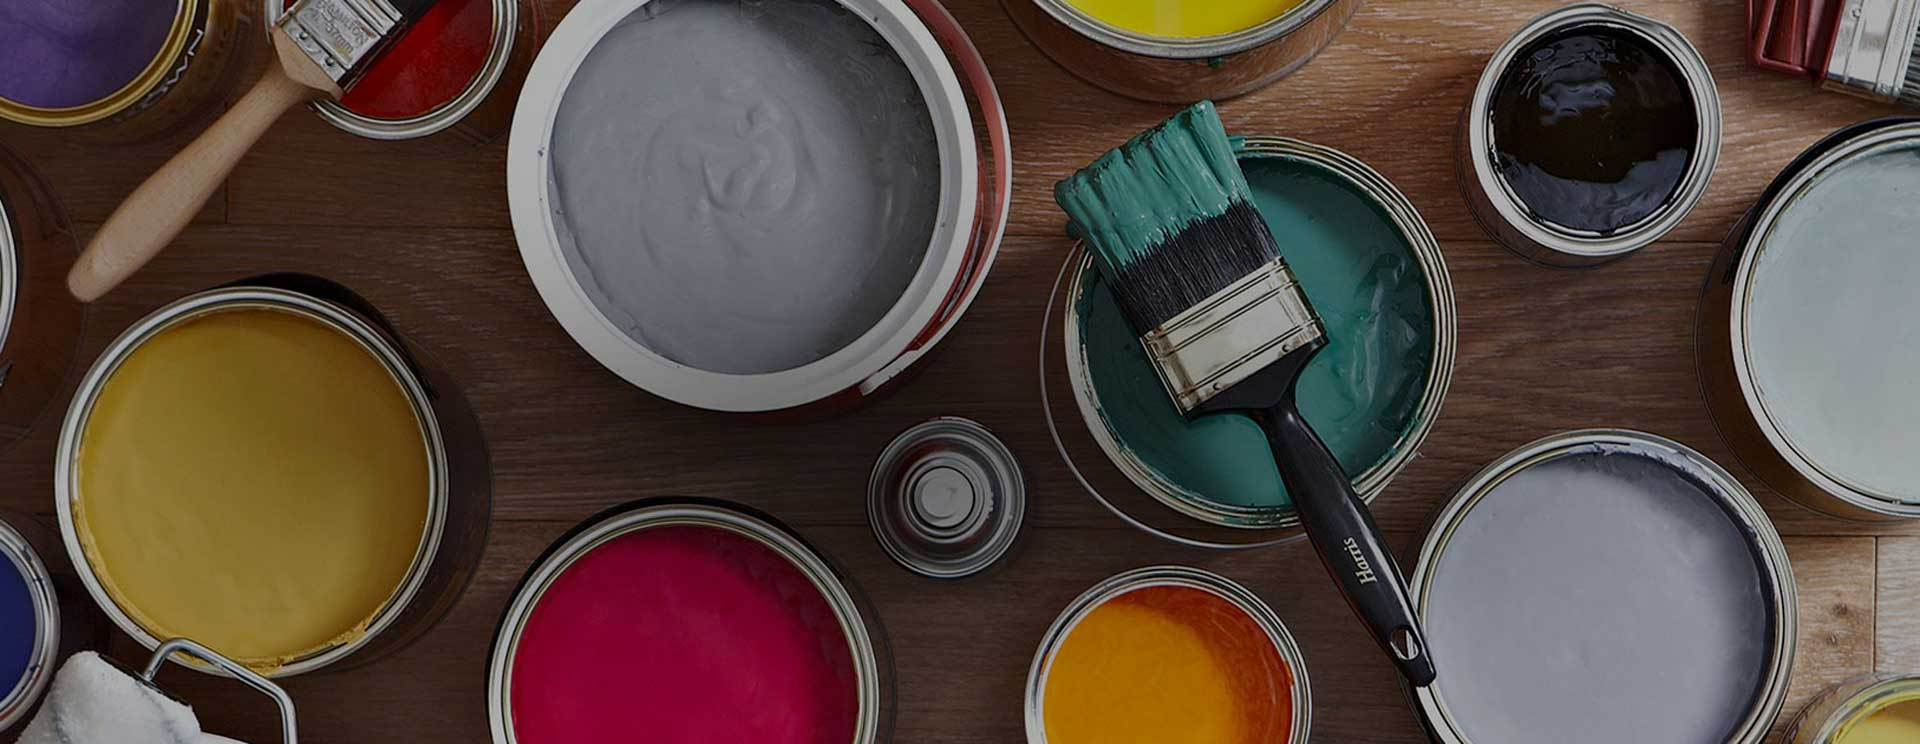 Al Gurg Paints LLC | Oasis Paints